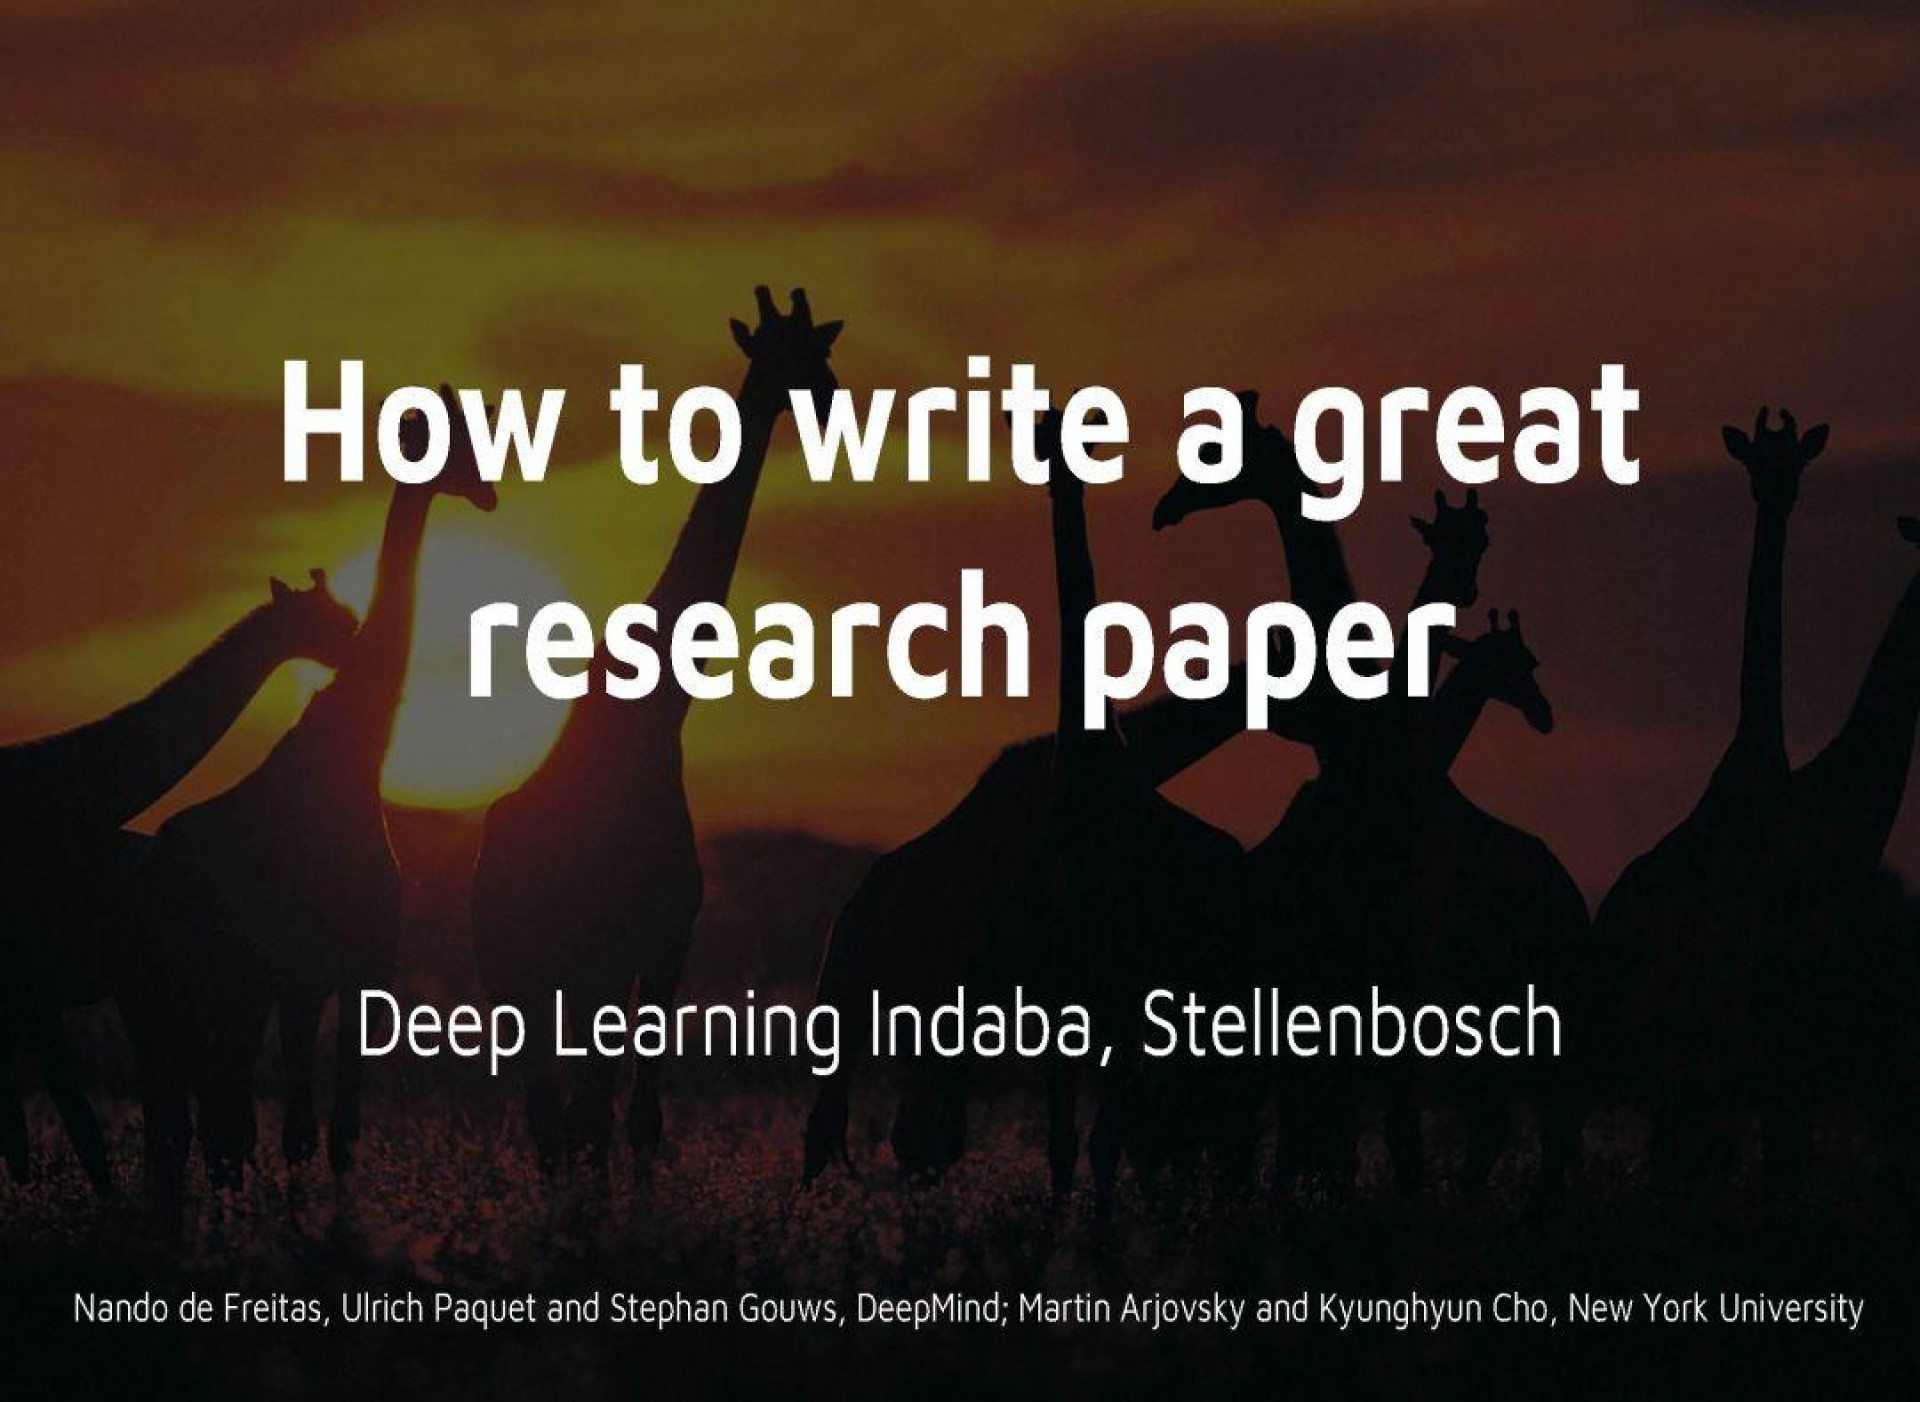 017 How To Write Great Research Paper Ppt Striking A Good Scientific 1920